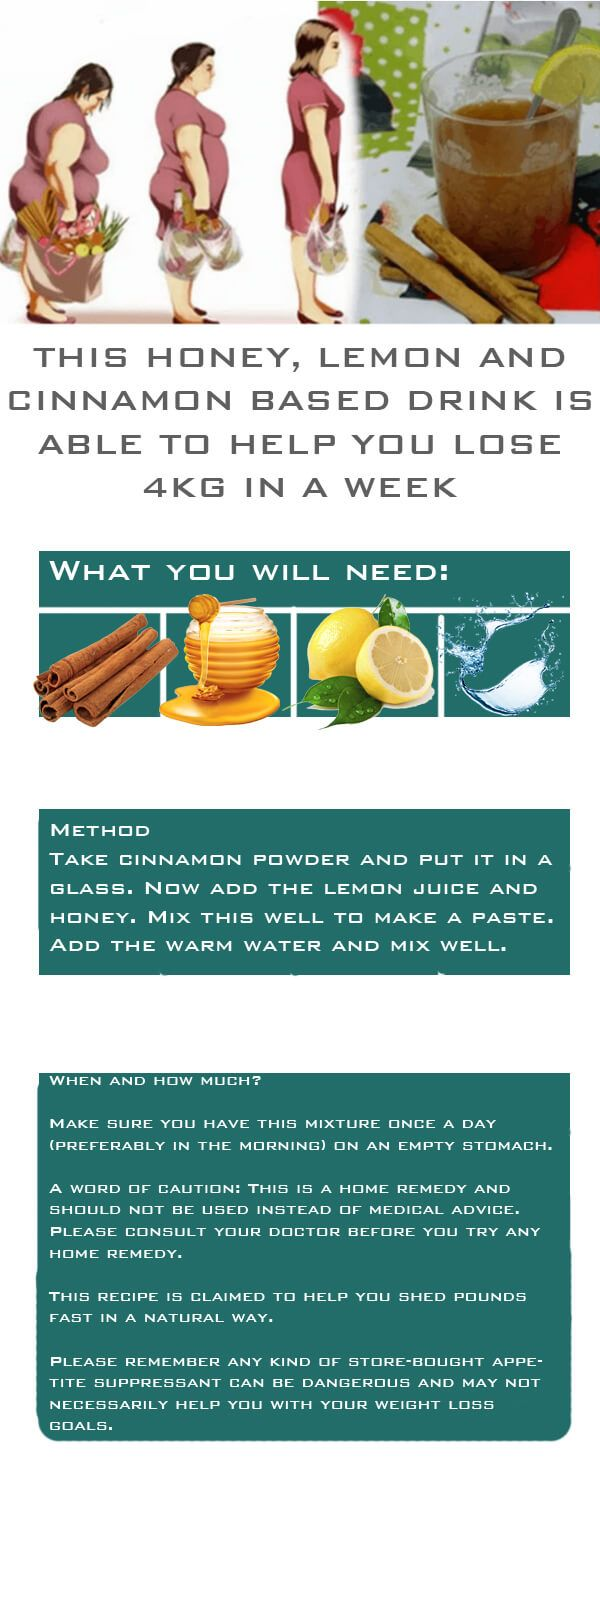 How to use water with lemon for weight loss ehow - Best 25 Lemon Cleanse Ideas On Pinterest Healthy Drinks Vinegared Food And Berry Juice